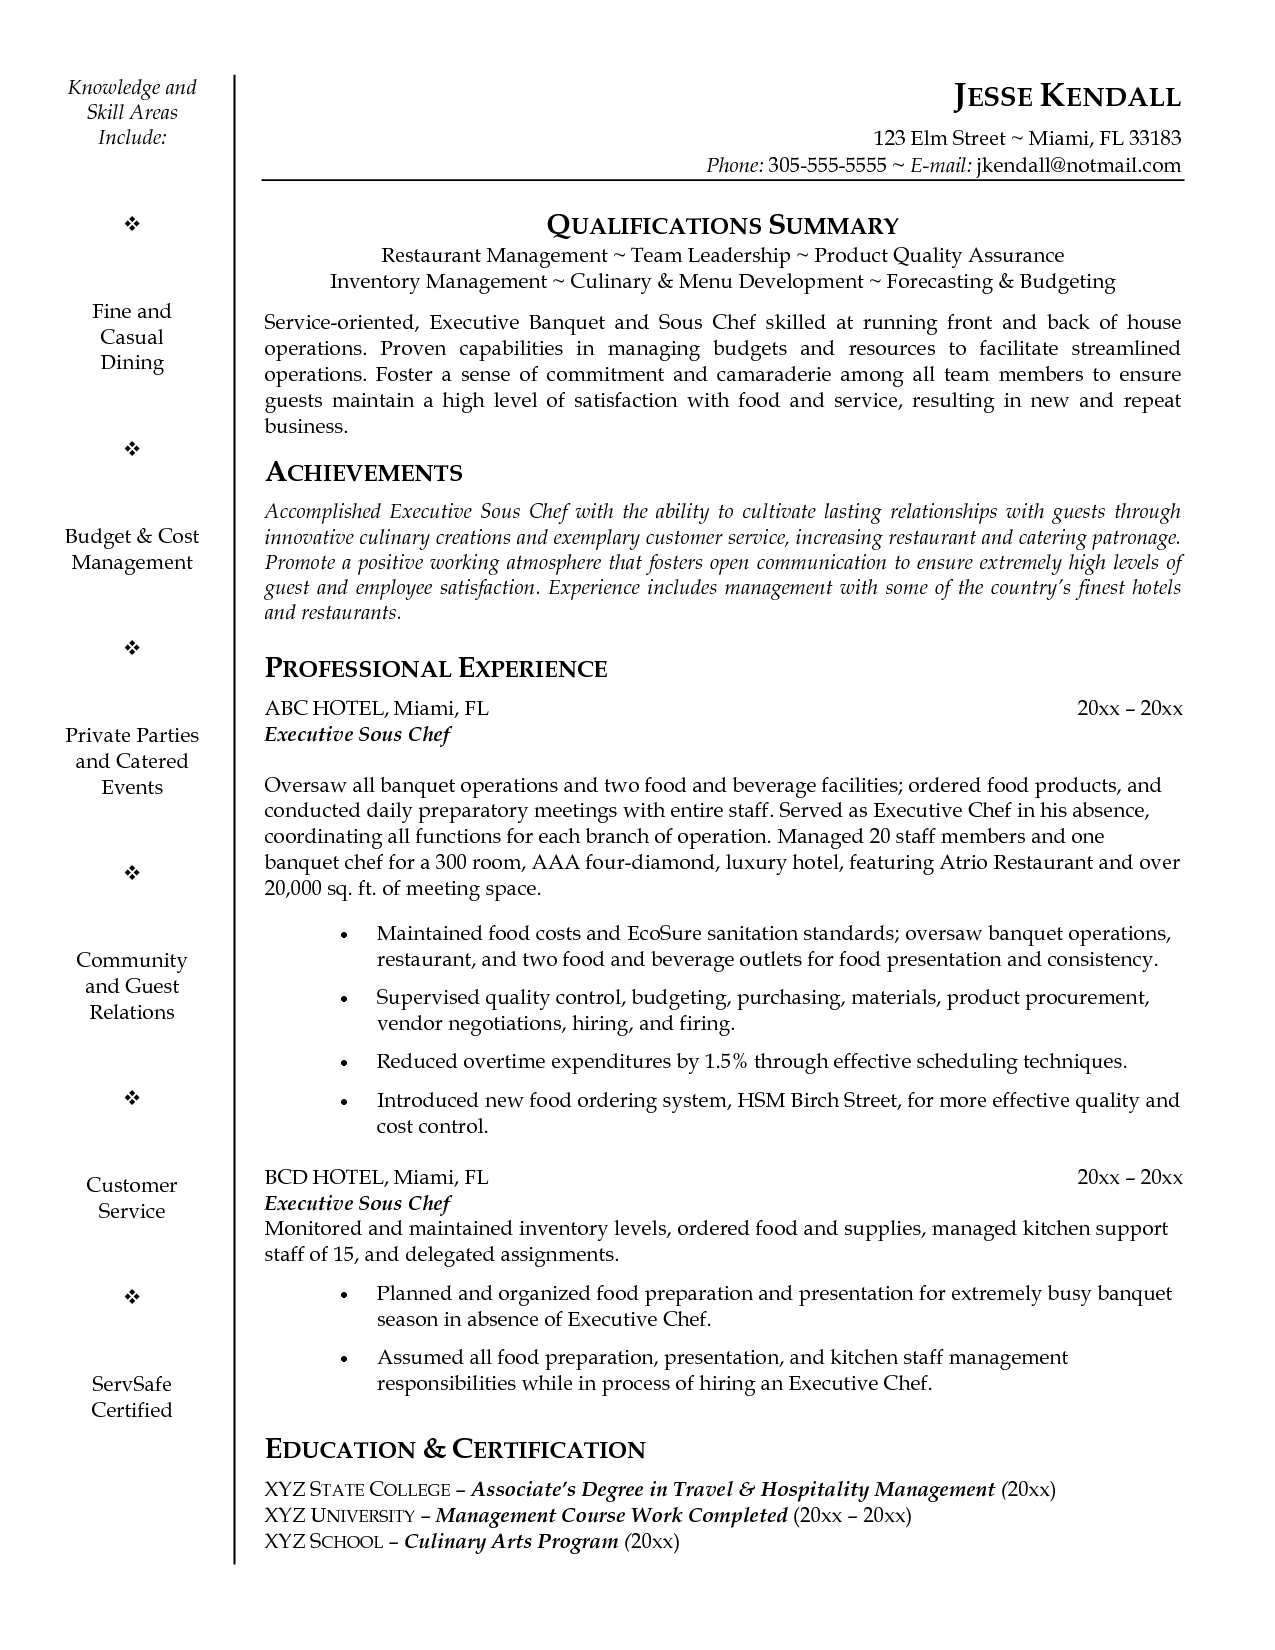 Executive Chef Resume Template Sous Chef Resume Examples  Httpwwwjobresumewebsitesouschef